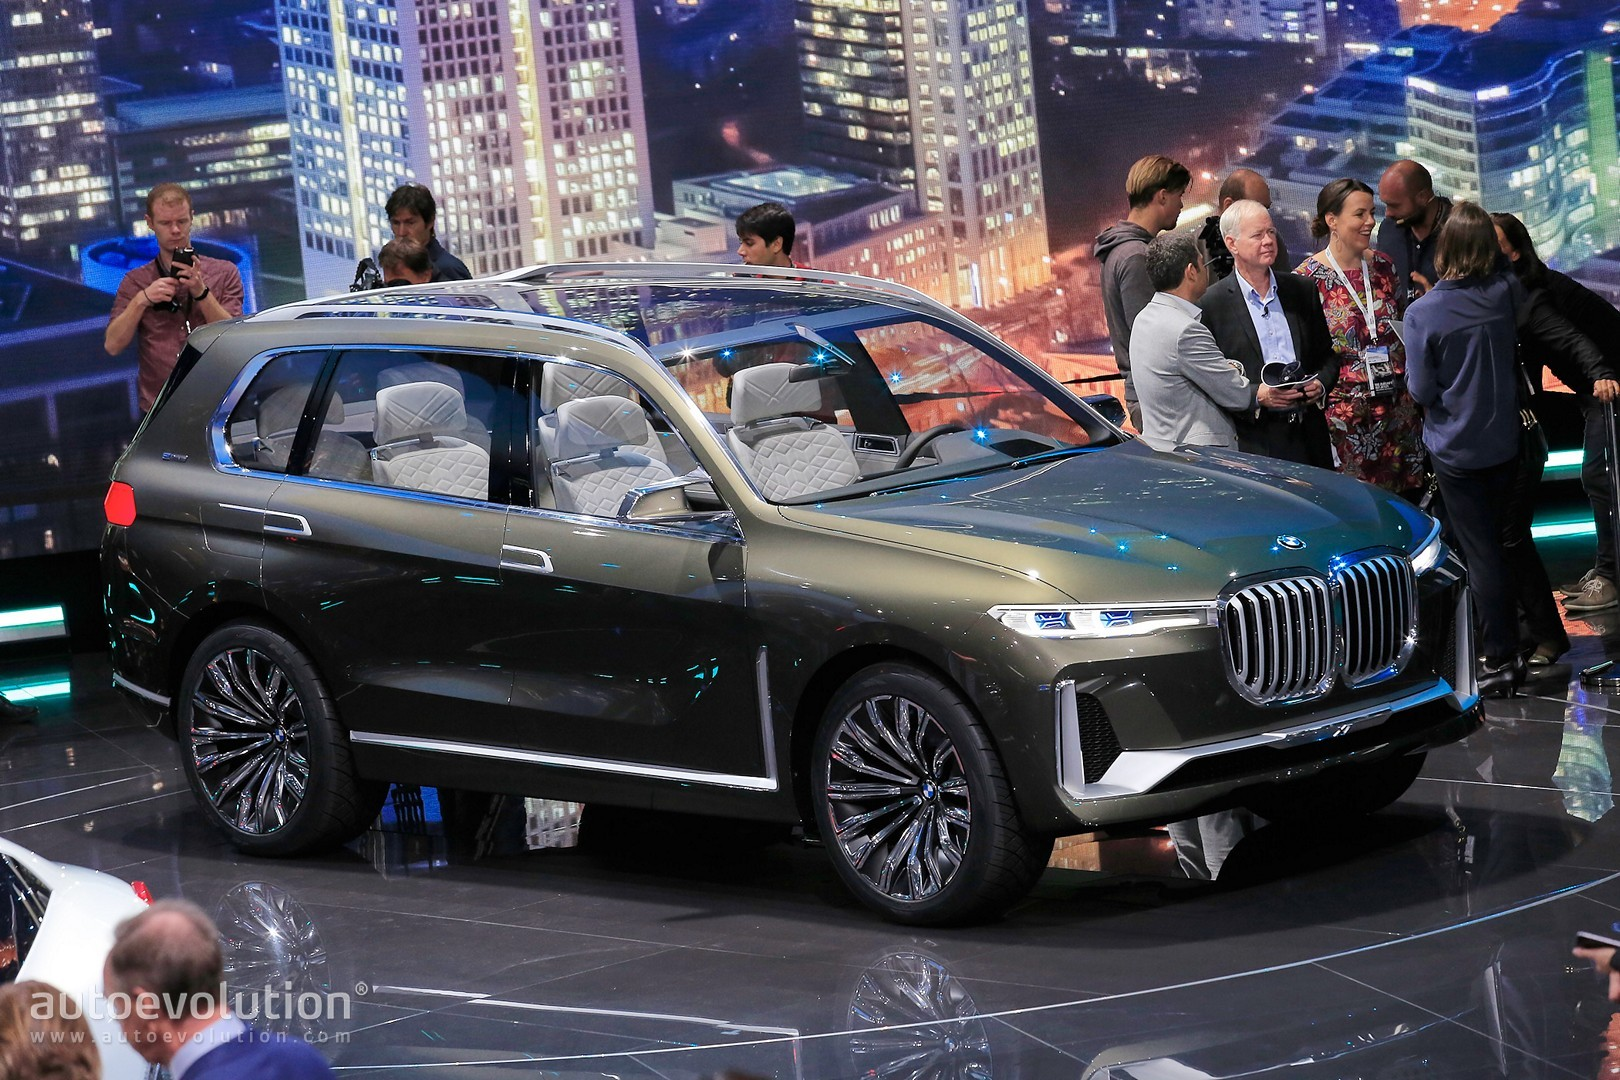 Bmw X7 Suv Concept Is A Range Rover Lookalike In Frankfurt Autoevolution